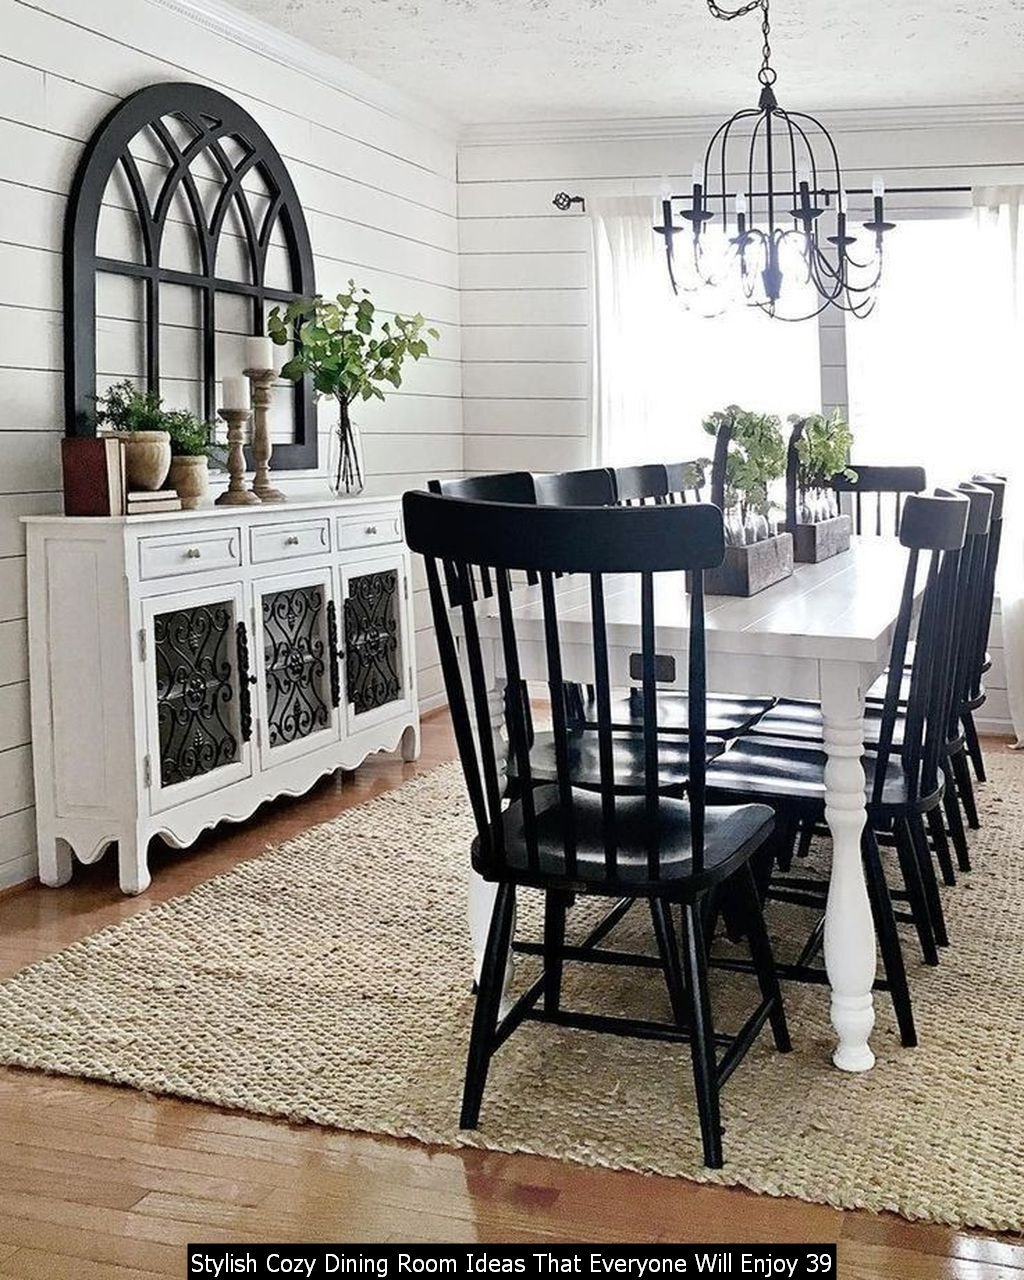 30 Stylish Cozy Dining Room Ideas That Everyone Will Enjoy Lovahomy